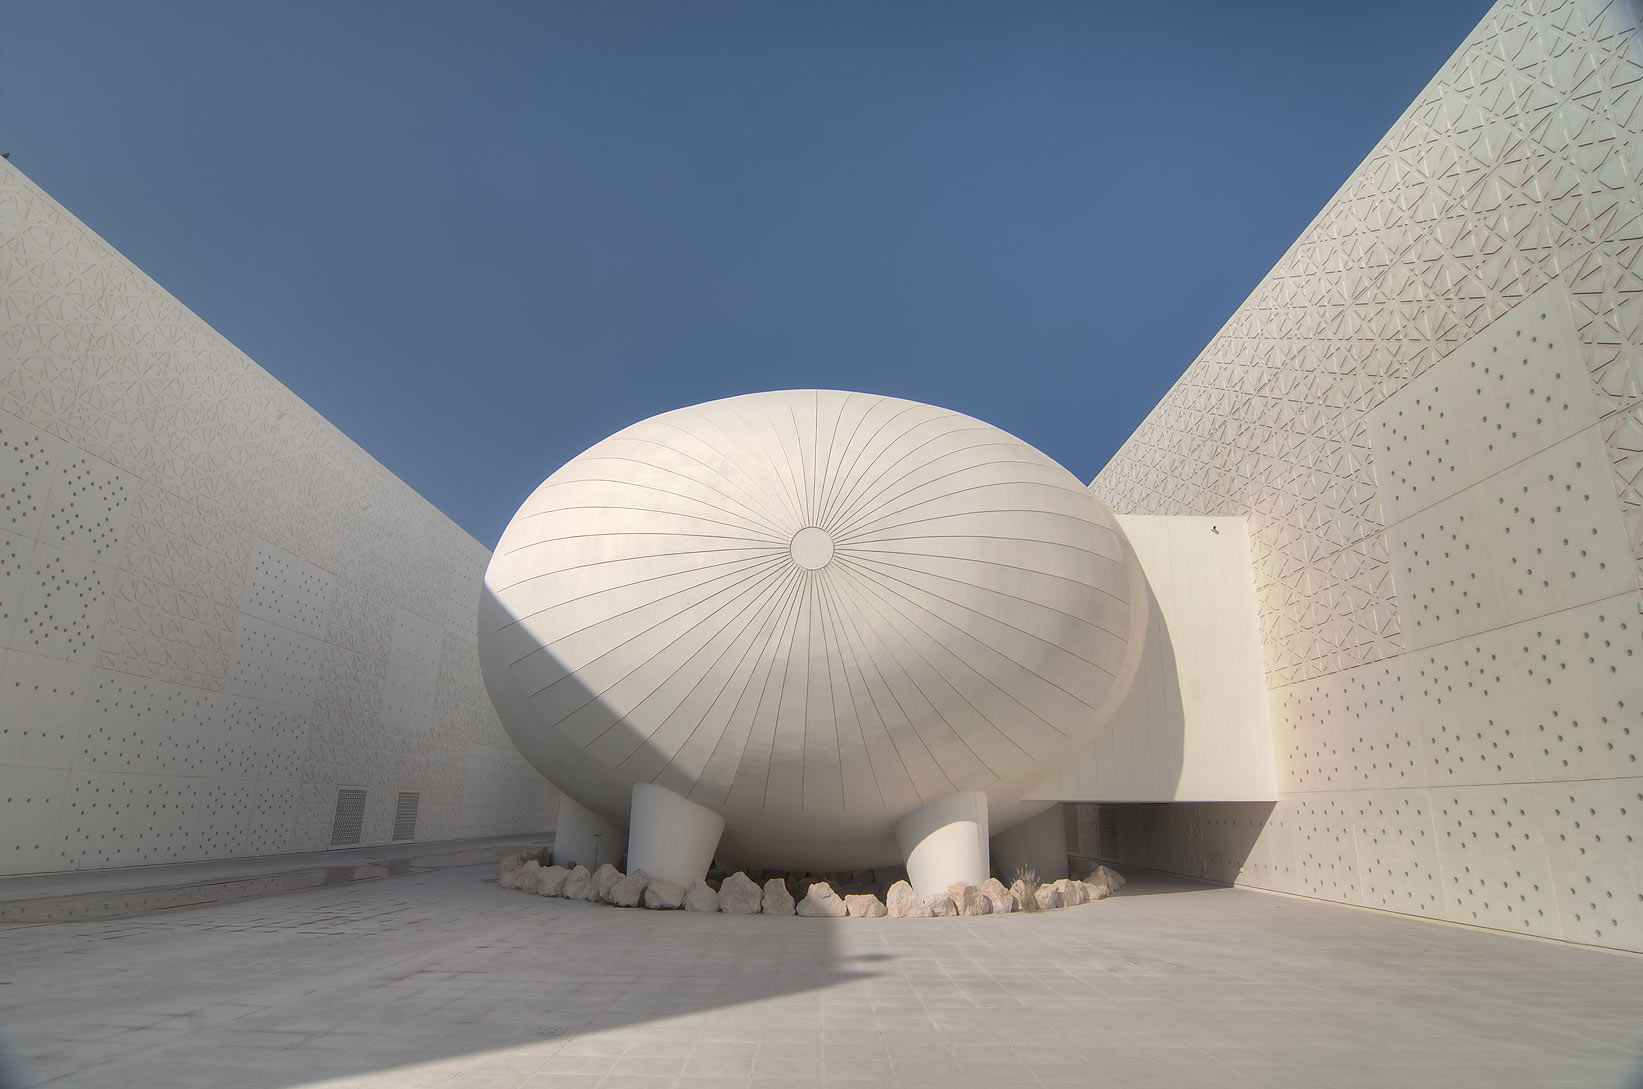 Ovoid lecture hall of Weill Cornell Medical College in Education City. Doha, Qatar